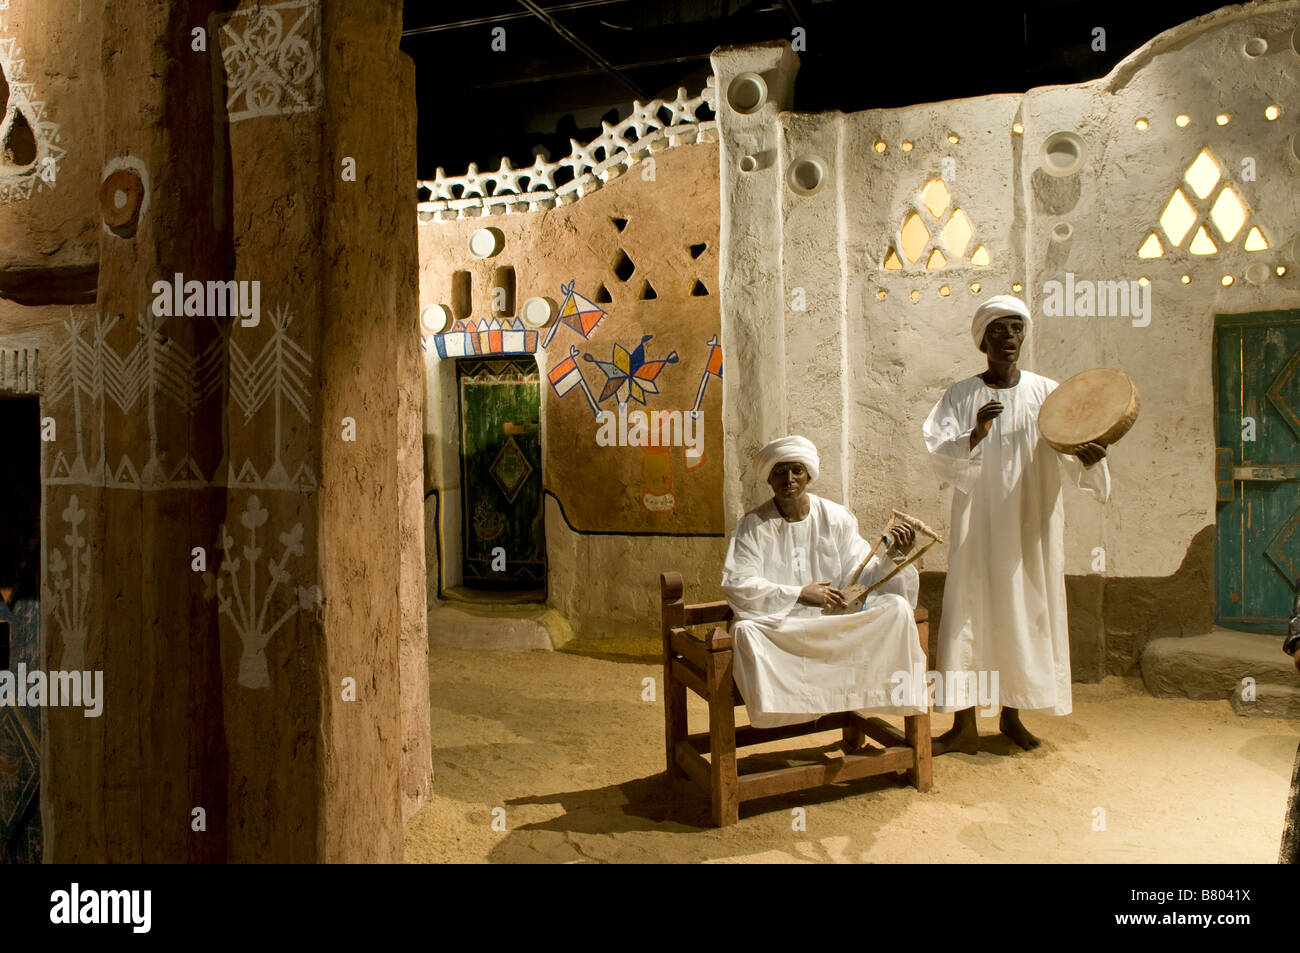 A Nubian ethnography exhibition inside the International Museum of Nubia in the city of Aswan in Egypt - Stock Image